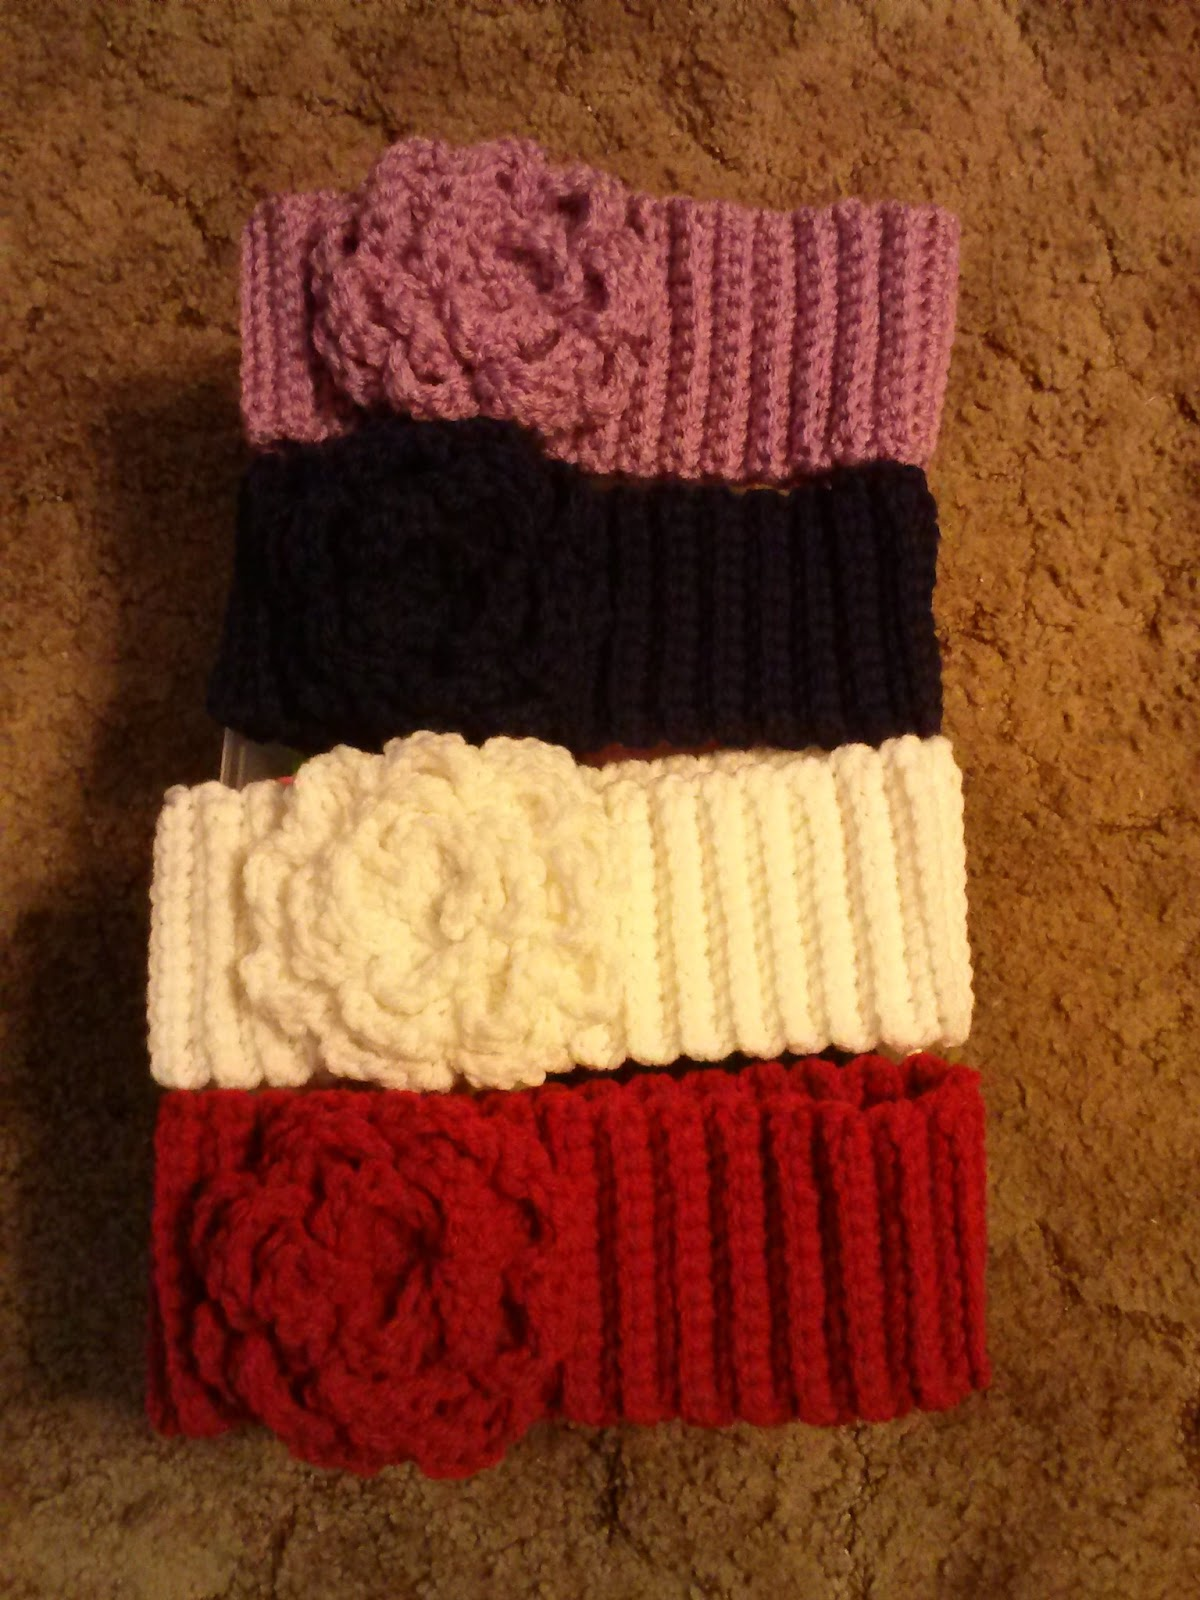 Knitting Pattern Ribbed Headband : Family, Books and Crochet...Oh My!: Ribbed Crochet Headbands